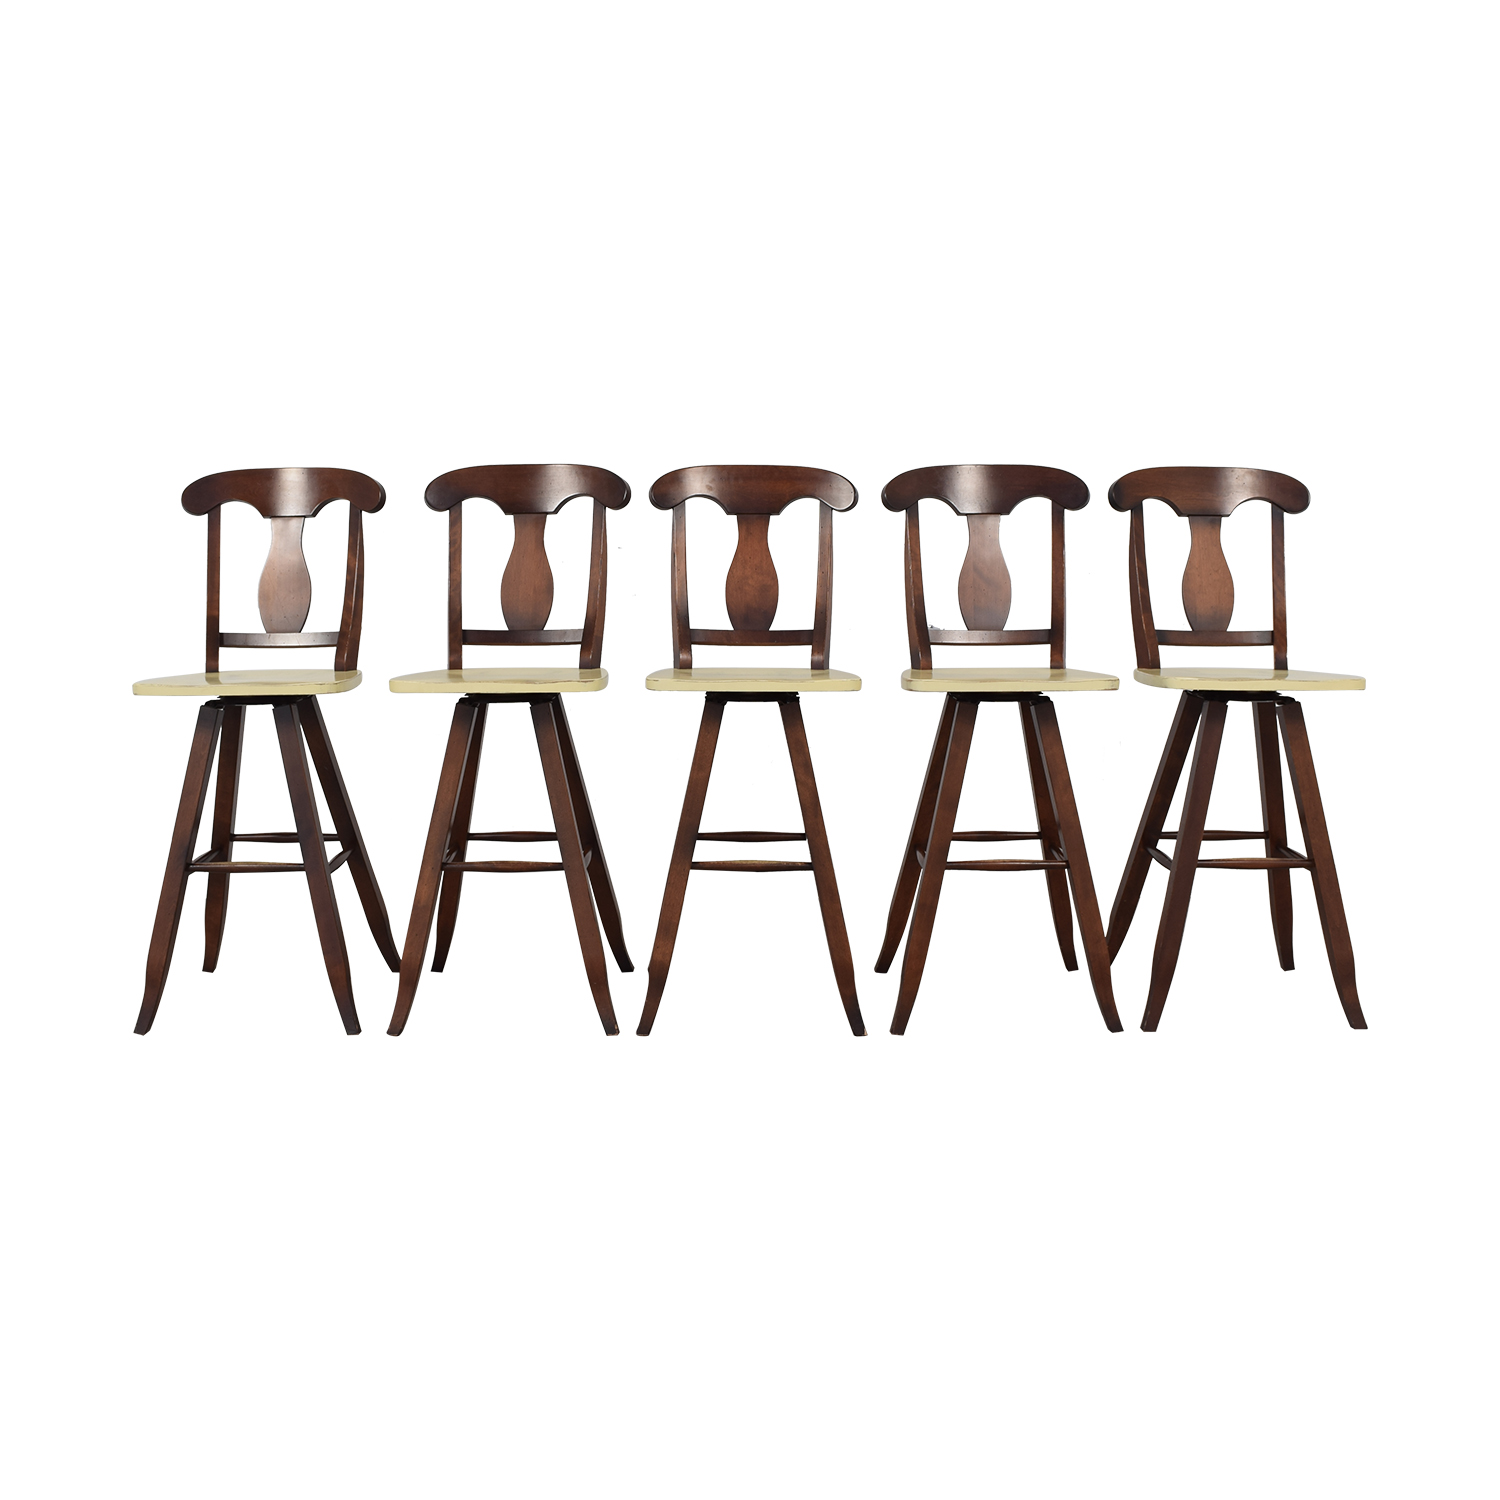 Traditional Swivel Stools beige & brown